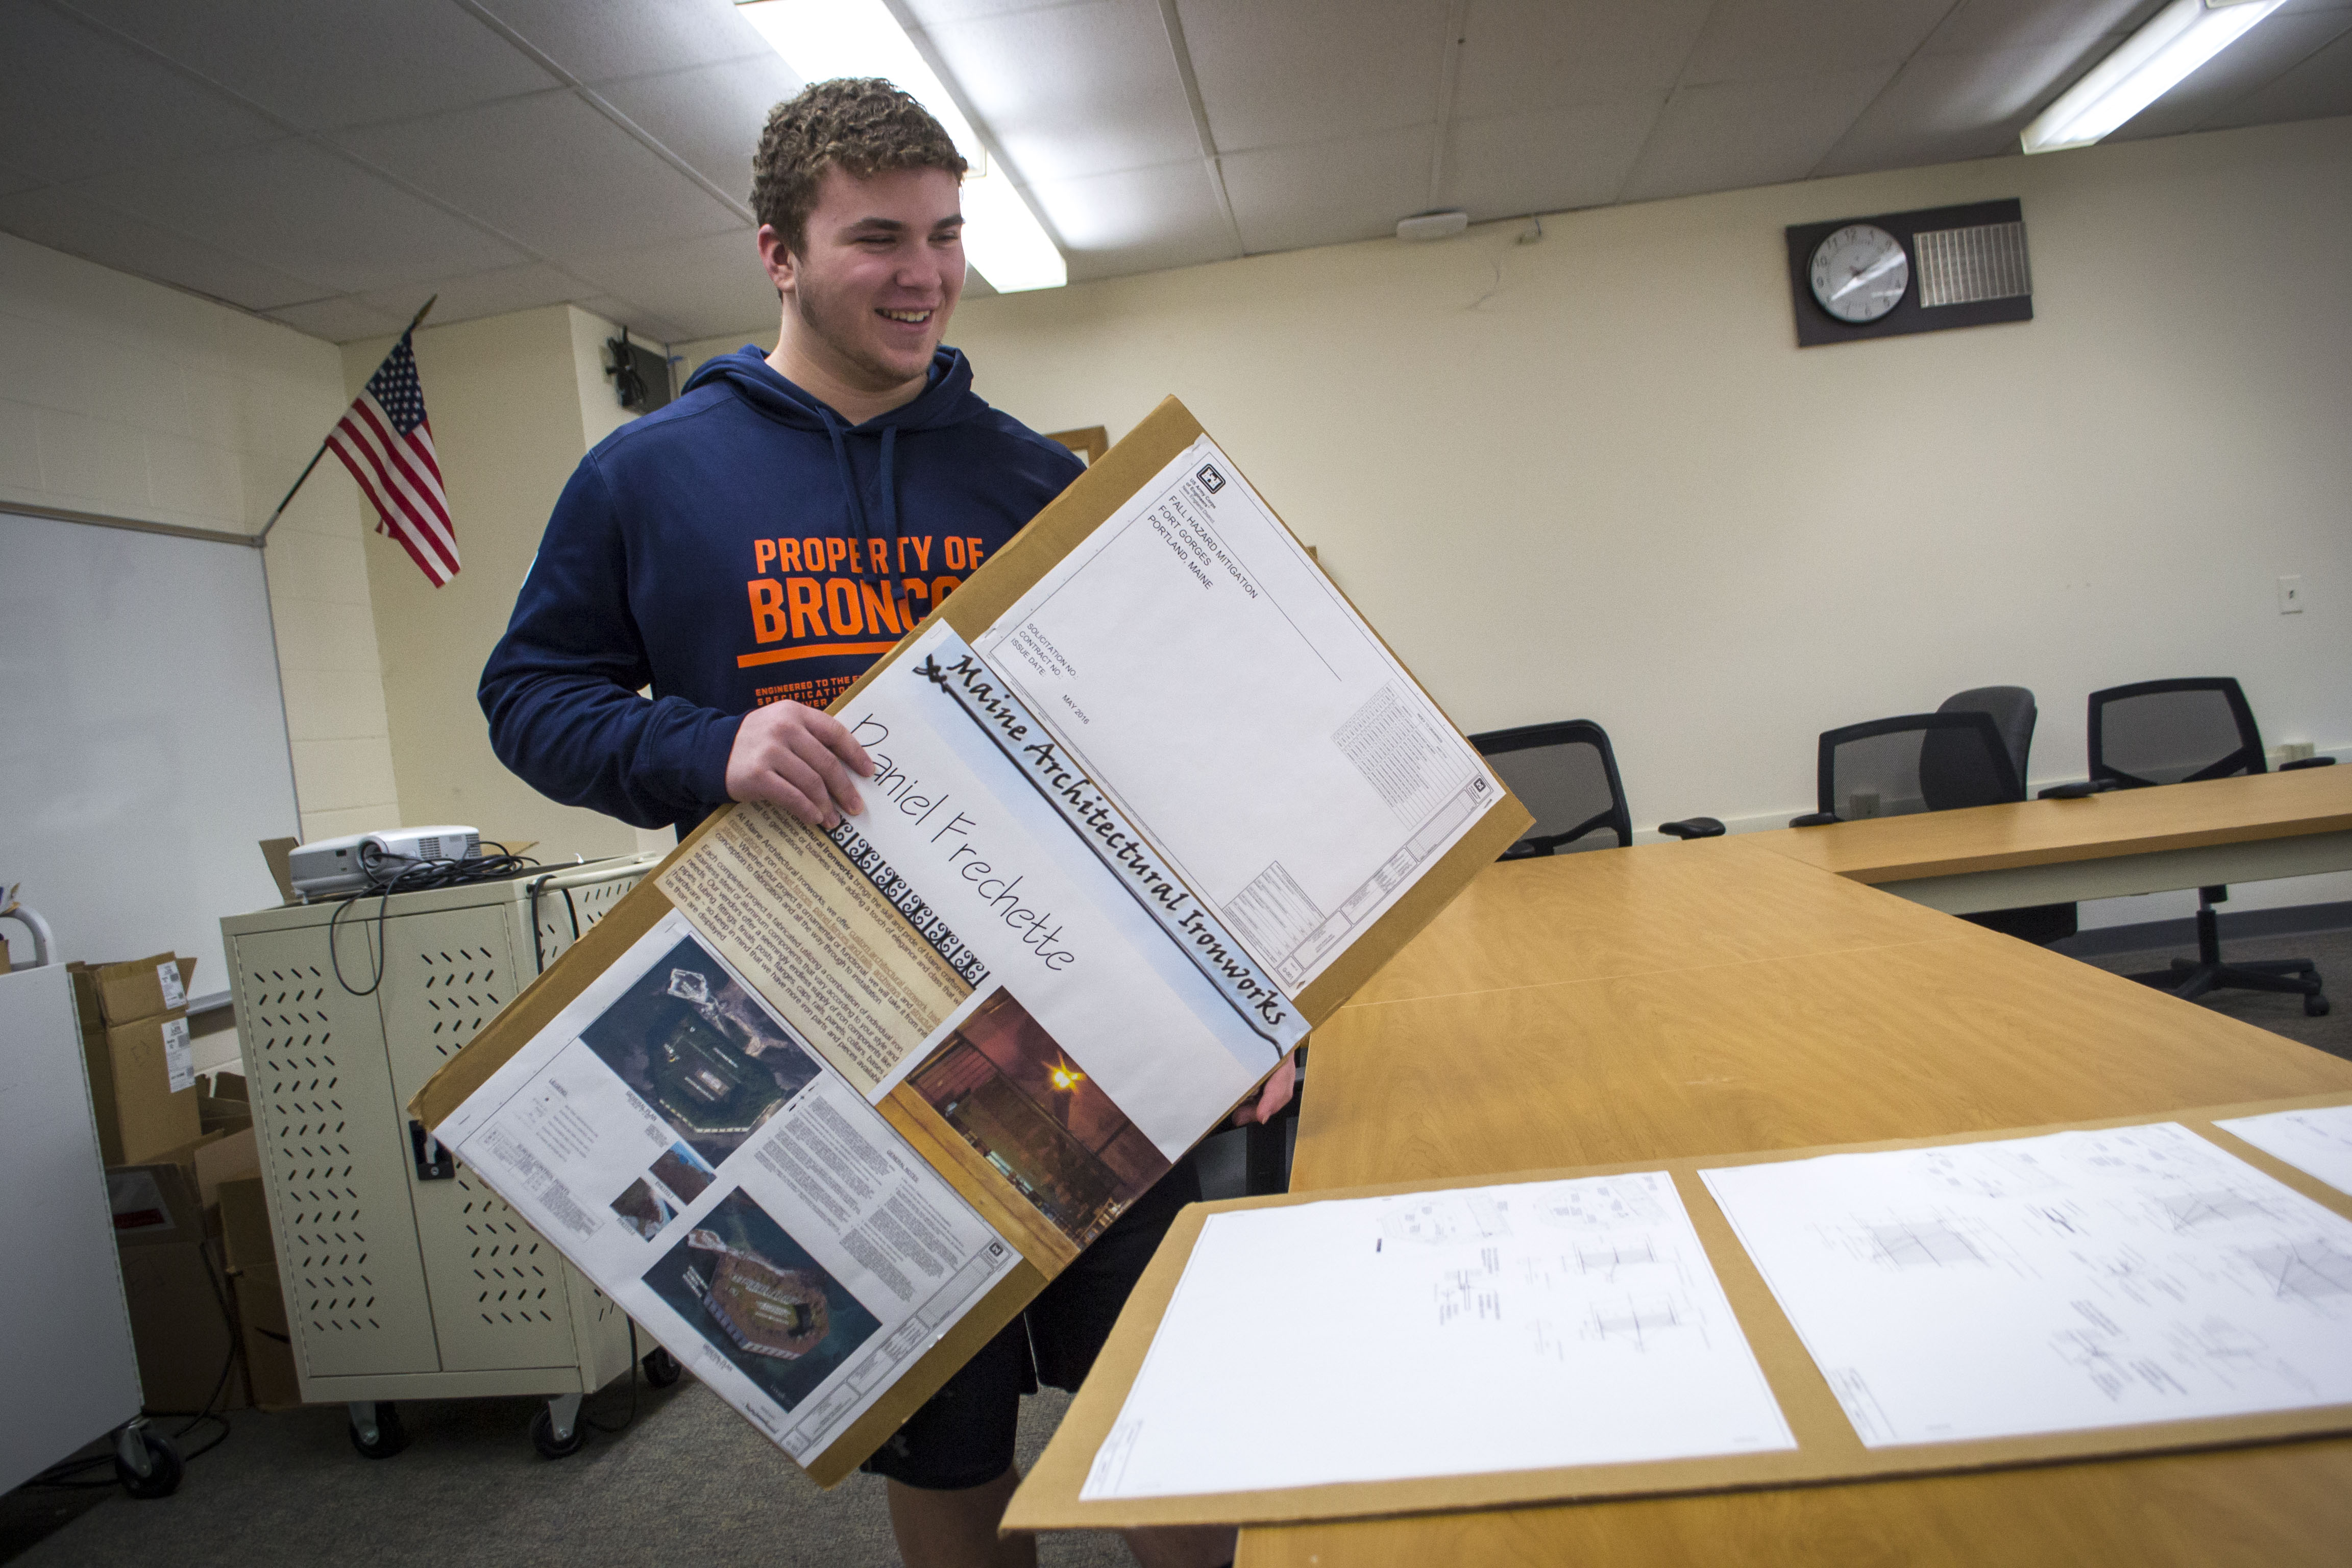 Daniel Frechette, 16, looks at his designs for gates and barricades that will be constructed and installed at Portland's Fort Gorges over the next several months. ALAN BENNETT/Journal Tribune